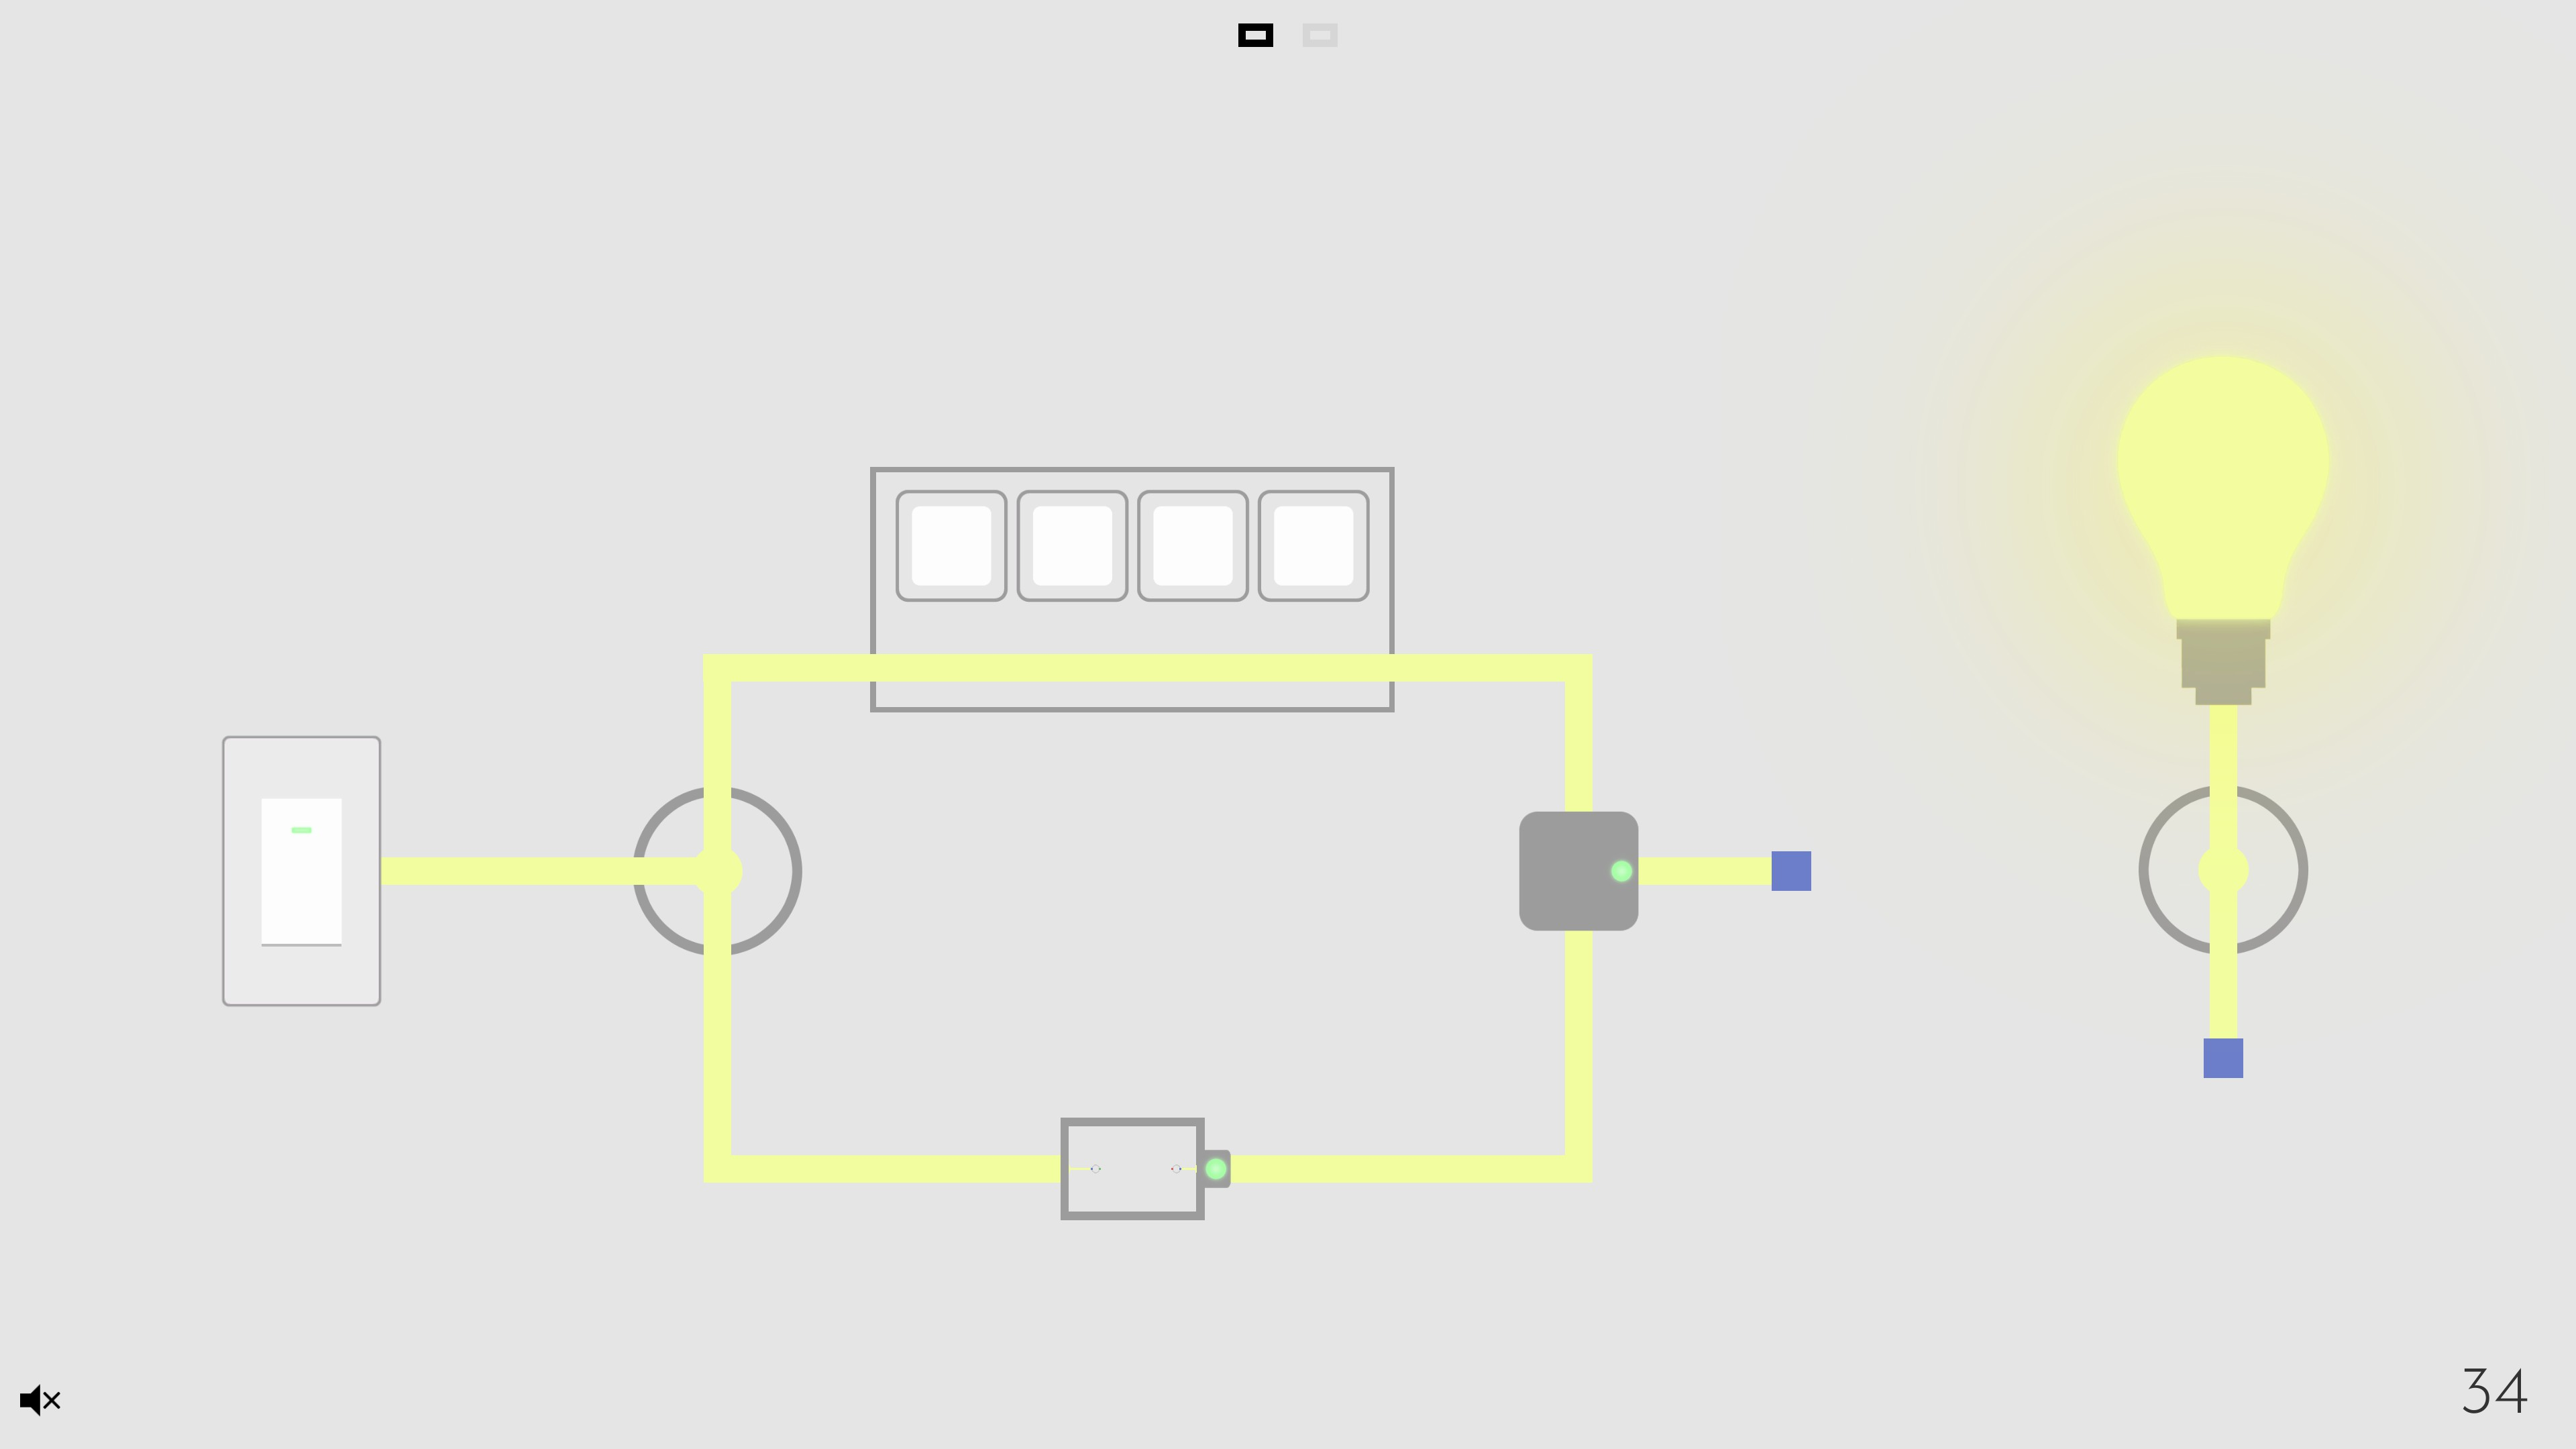 Turn on the light. An illuminated circuit with a switch mini-puzzle, dial, embedded circuit, teleporter, and AND gate.